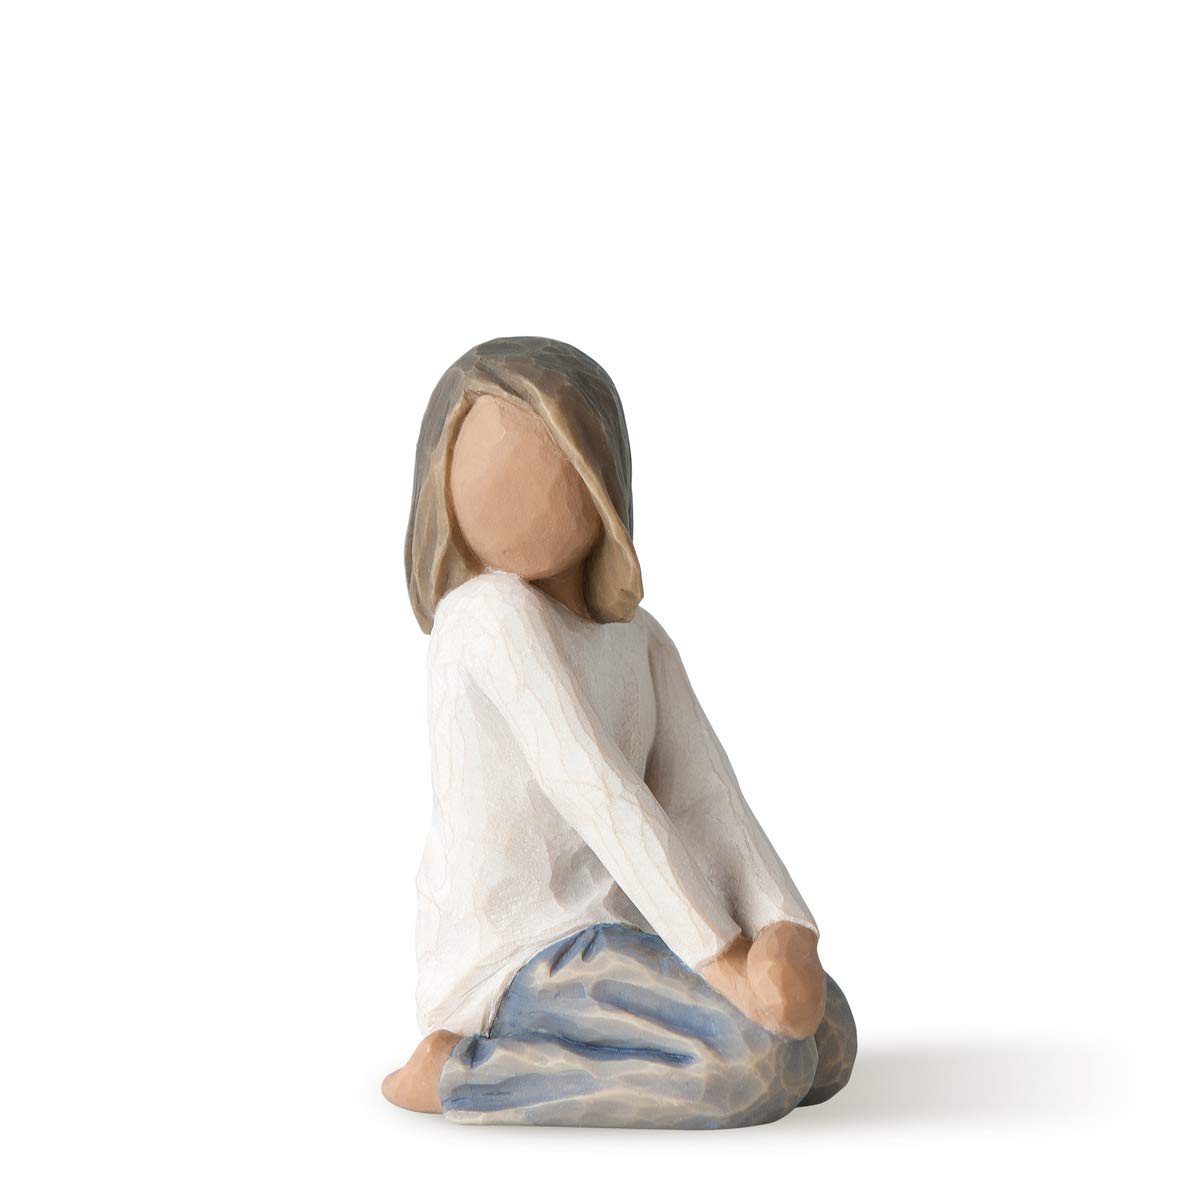 Willow Tree Joyful Child (Darker Skin Tone & Hair Color), Sculpted Hand-Painted Figure